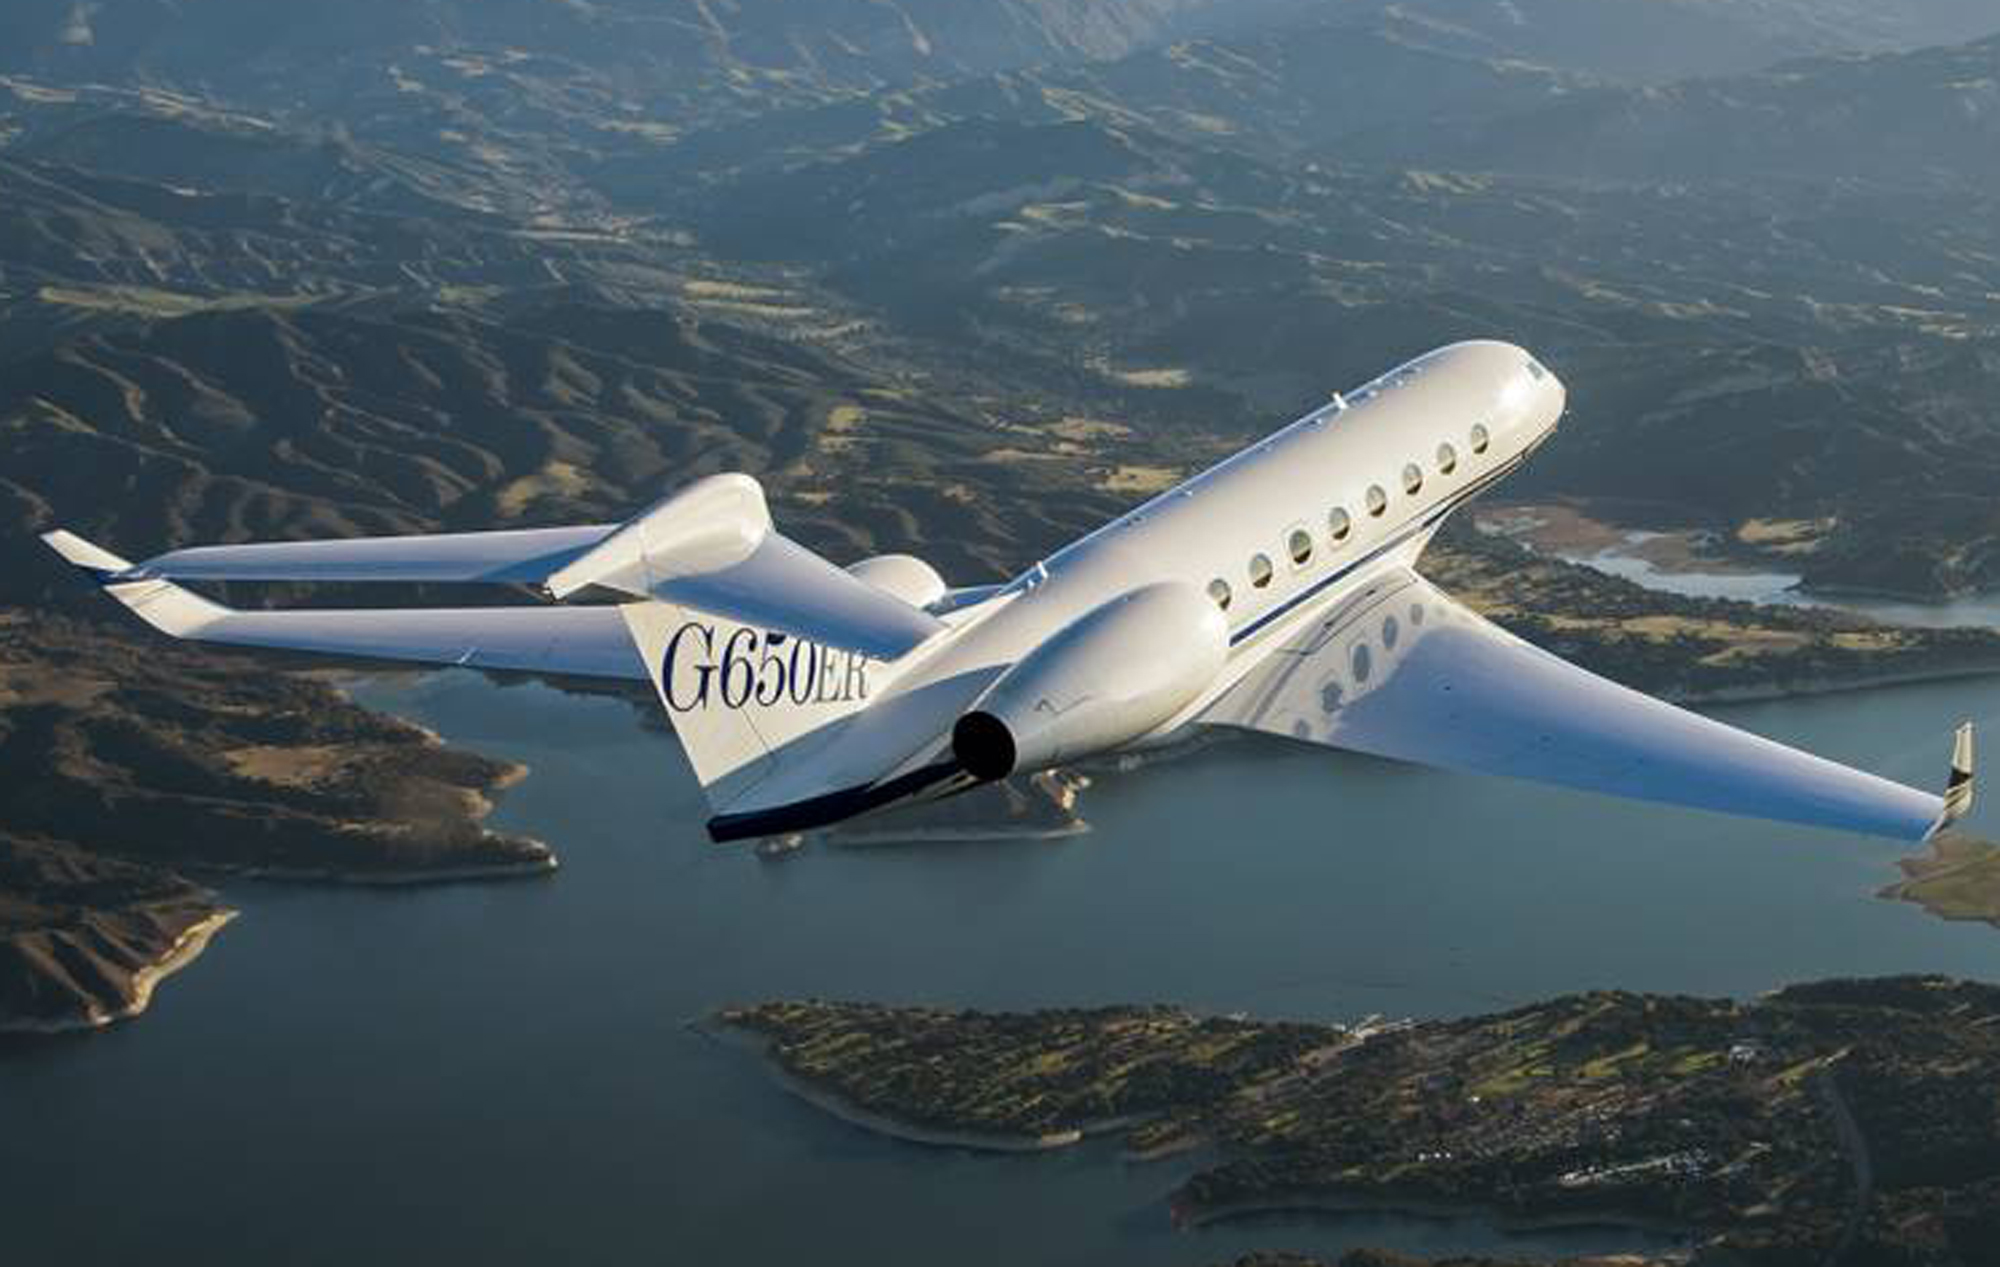 plane interior sound with Three Years Gulfstream G650 Fleet Nears 150 on Three Years Gulfstream G650 Fleet Nears 150 likewise Rev04218 in addition Buying A Cessna 172 Part 2 Of 5 furthermore 58009d82f6b4da963f14e21a20abb153 39 besides Plane Spotting Embraer Legacy 600.